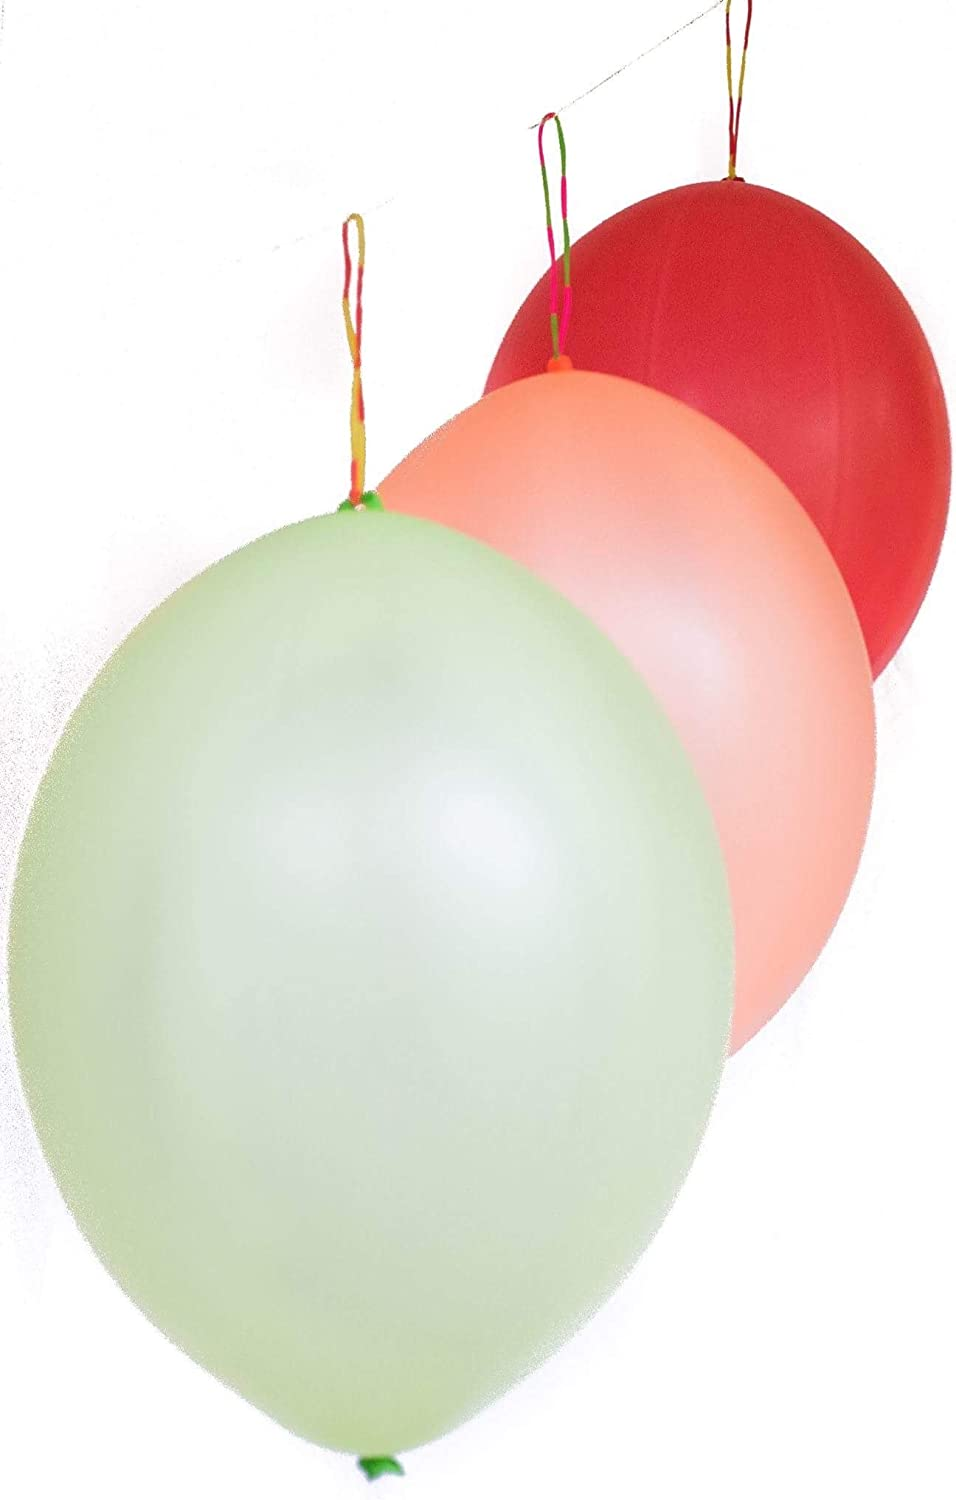 Details about  /5 x Punch ball balloons bag fillers wedding//kids birthday party mixed colors